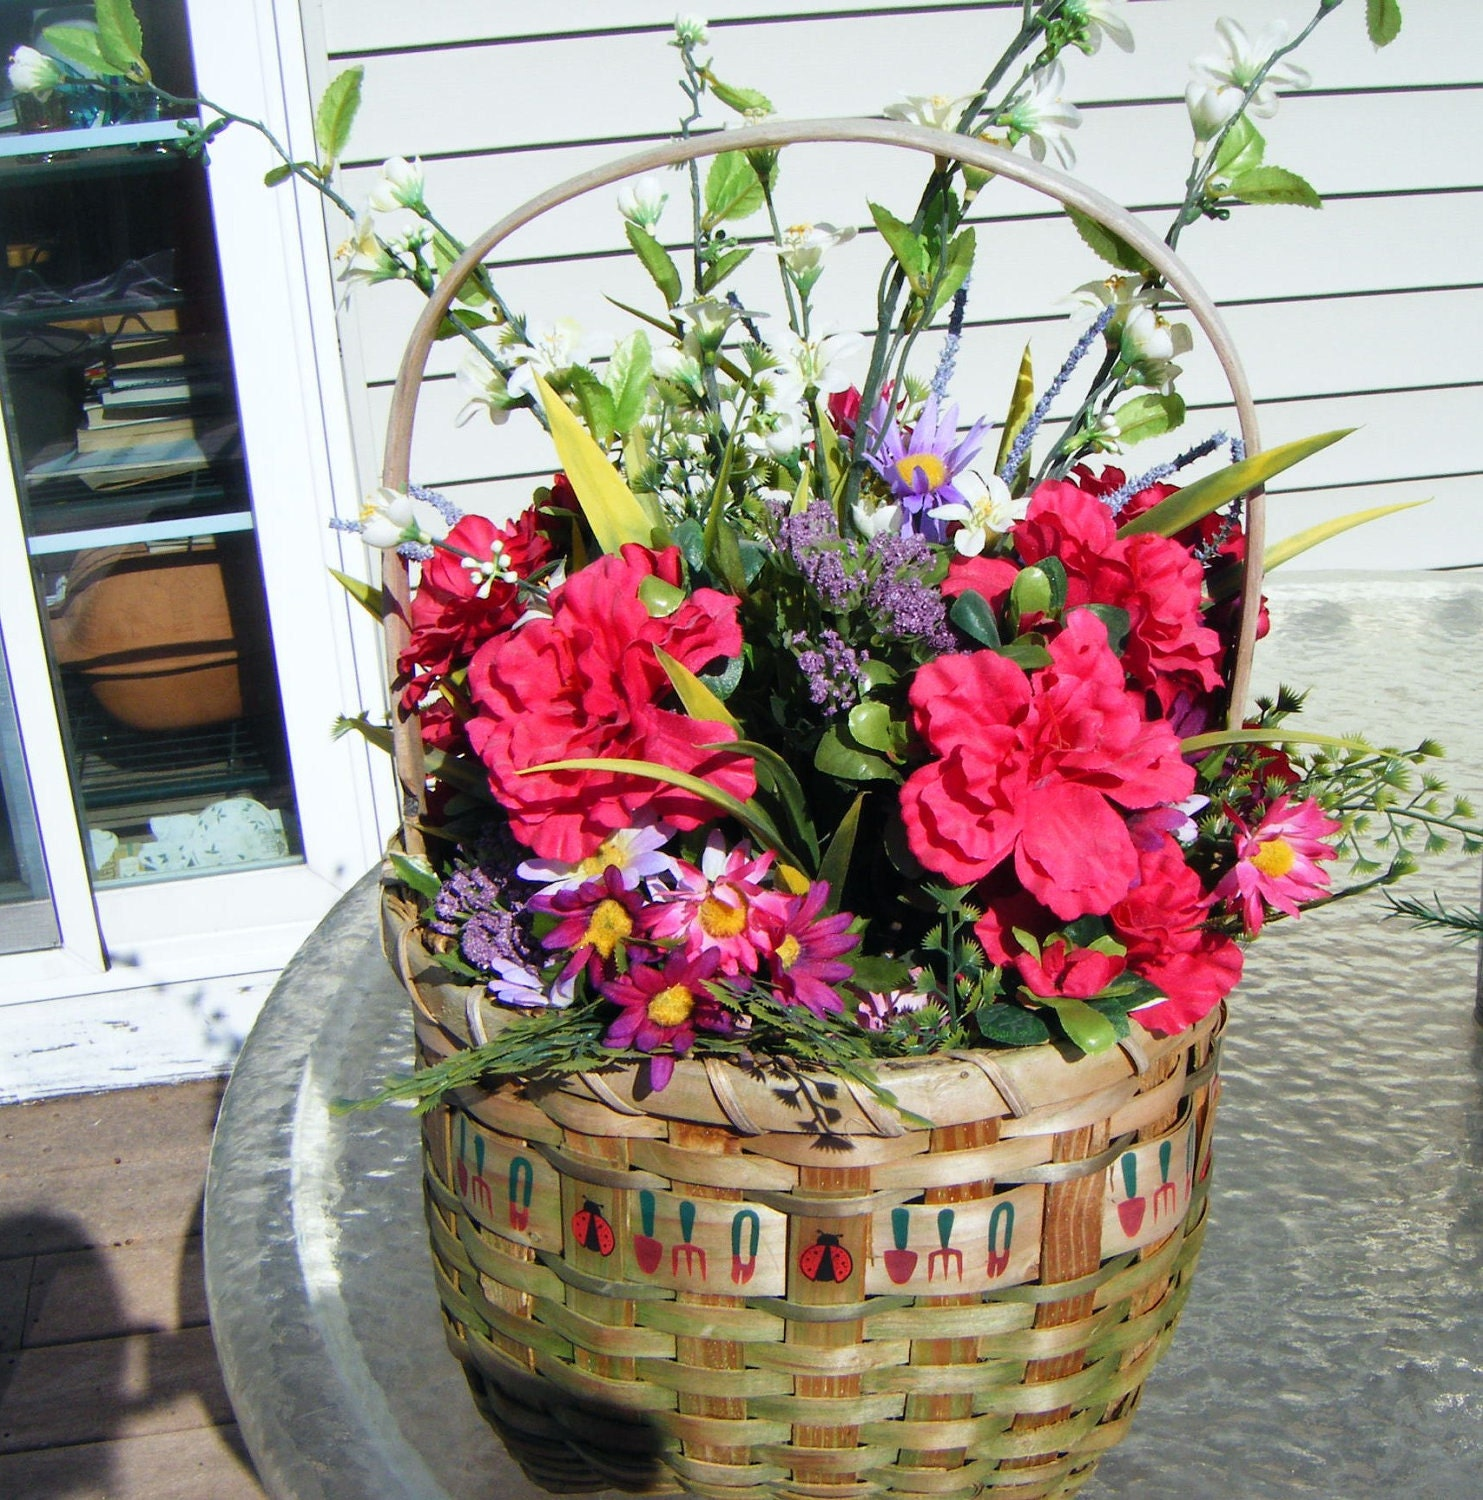 Basket Full Of Spring Flowers And Greenery That Will Last